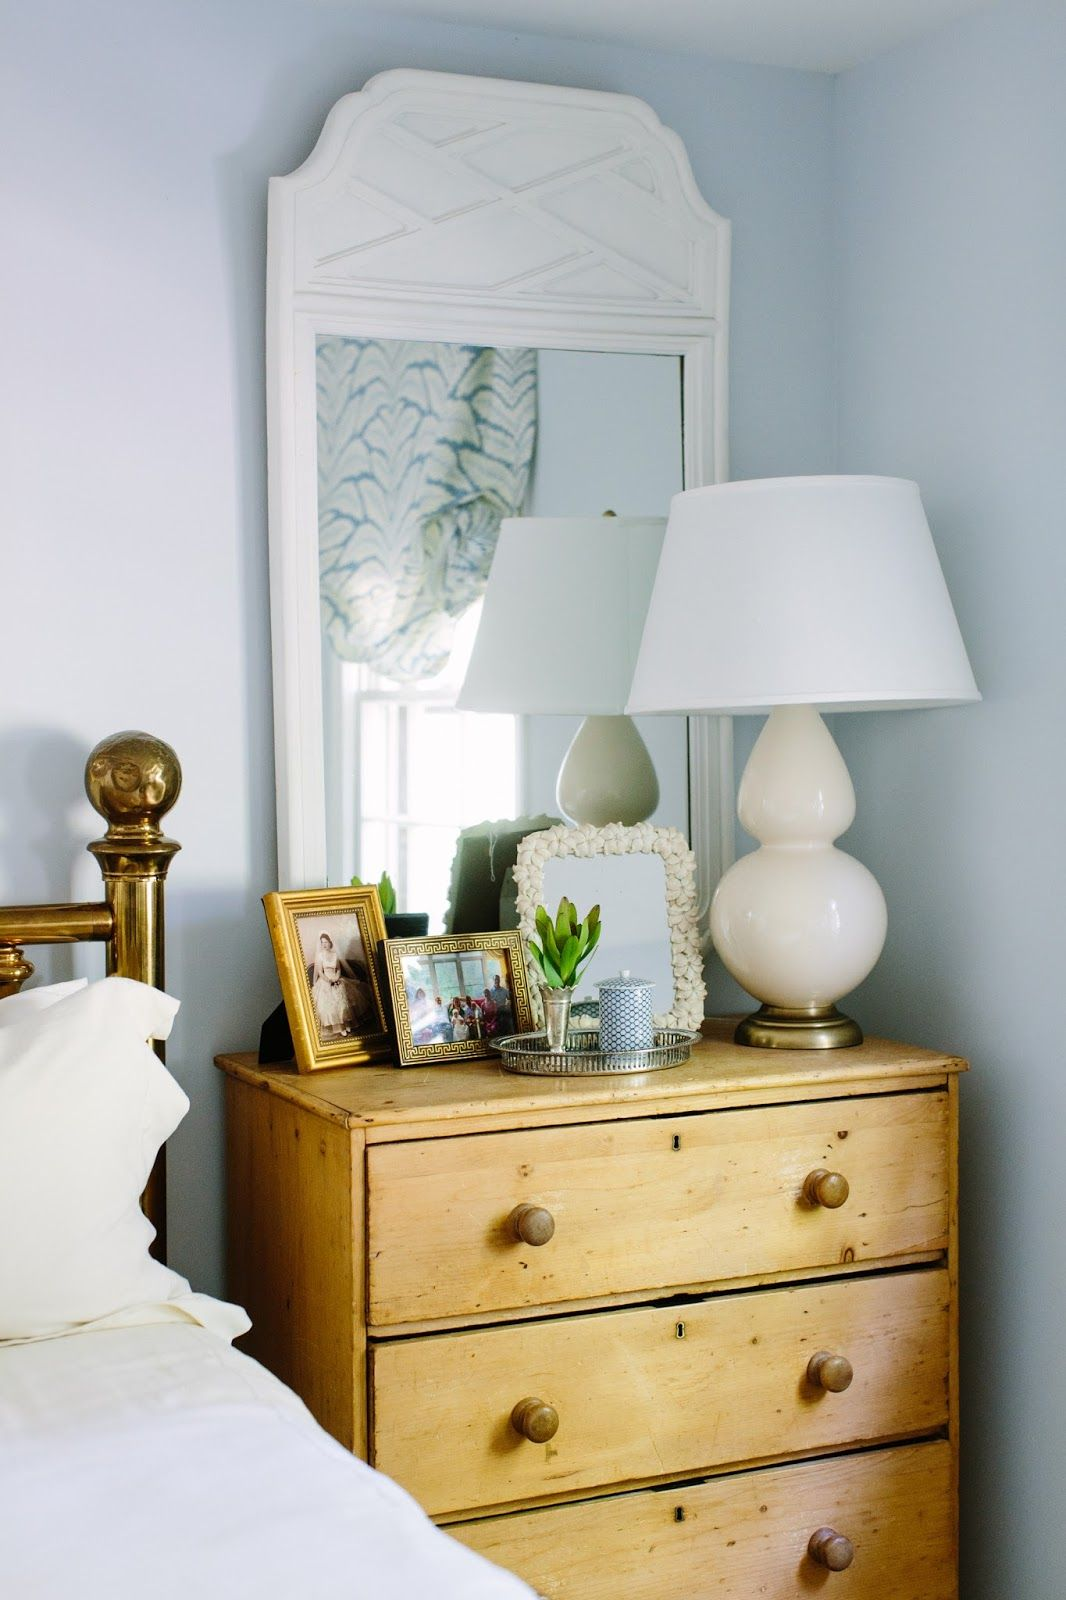 Fine I Suwannee The Real Raleigh Anna Applegate Bedside Table Download Free Architecture Designs Itiscsunscenecom